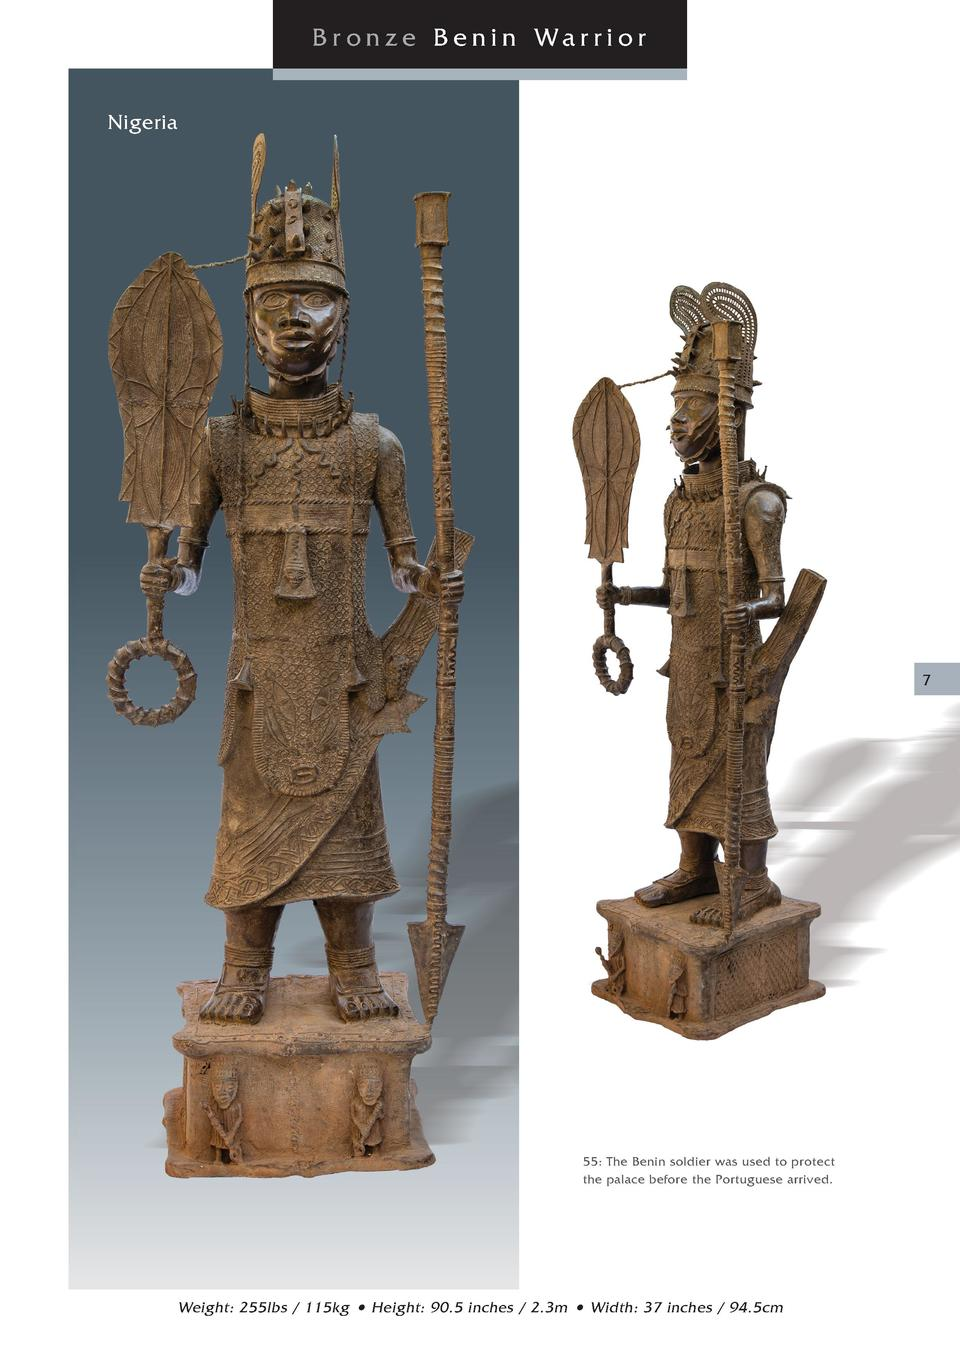 Br onze Benin Warrior Nigeria  7  55  The Benin soldier was used to protect the palace before the Portuguese arrived.  Wei...